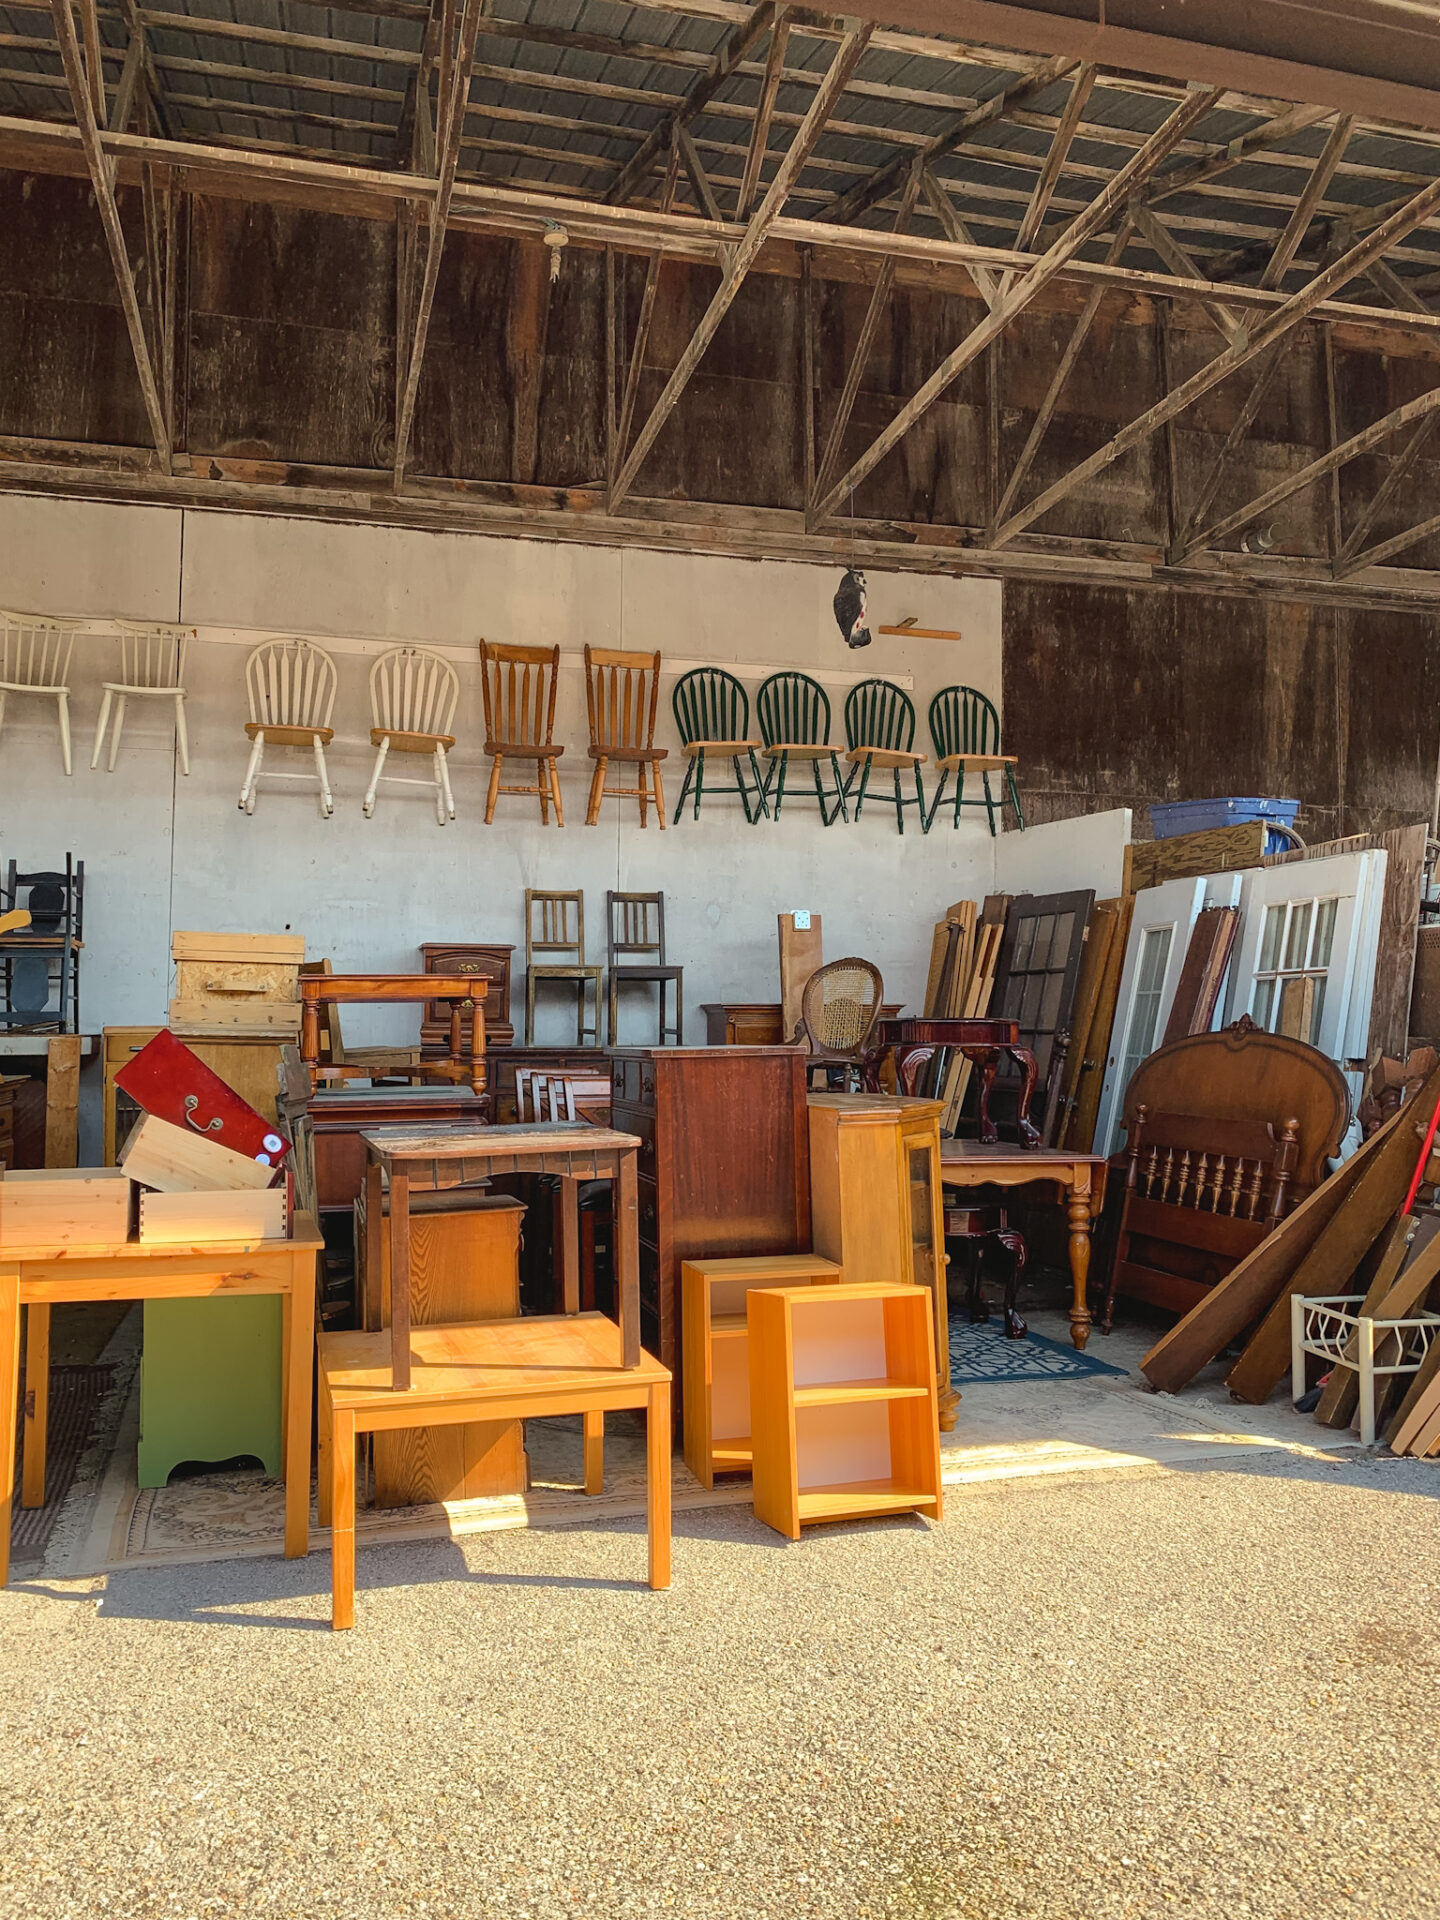 Vintage furniture at Courtice Flea Market in Courtice, Ontario